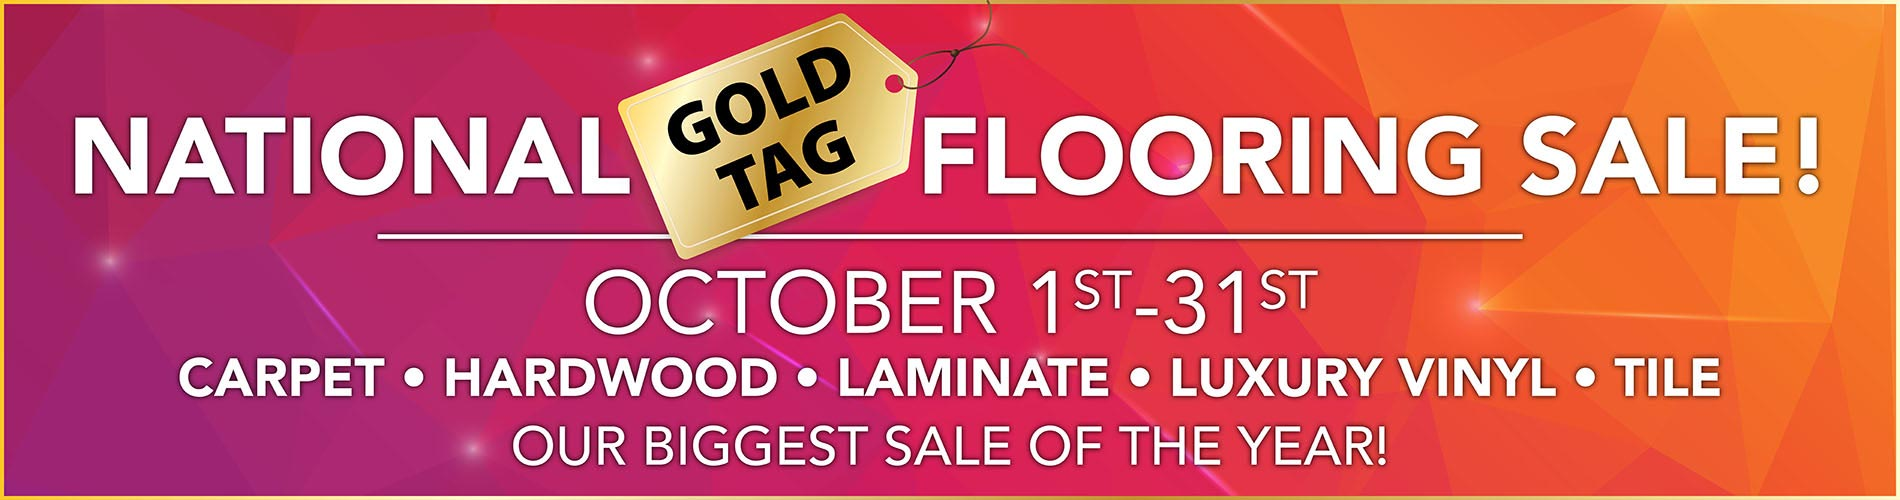 National Gold Tag Flooring Sale Oct 1st-31st | Carpet - Hardwood - Laminate - Luxury Vinyl - Tile | Our Biggest Sale of the Year!